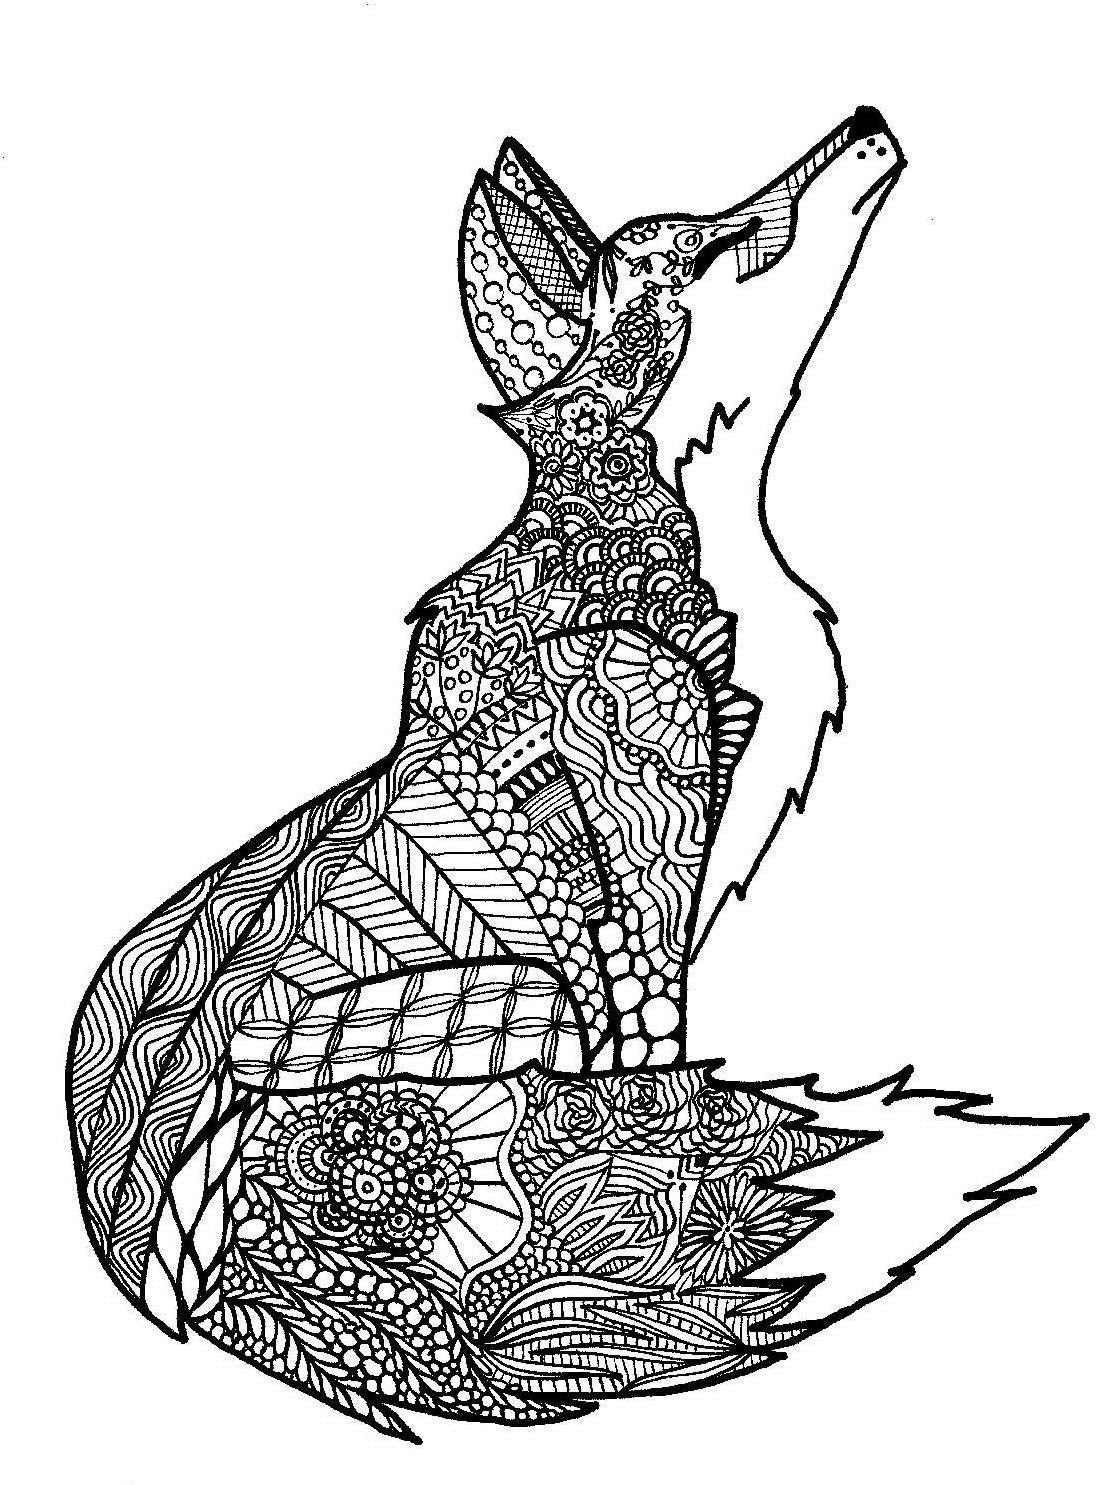 zentangle patterns coloring pages kearney woman39s zentangle coloring book stems from her coloring zentangle patterns pages